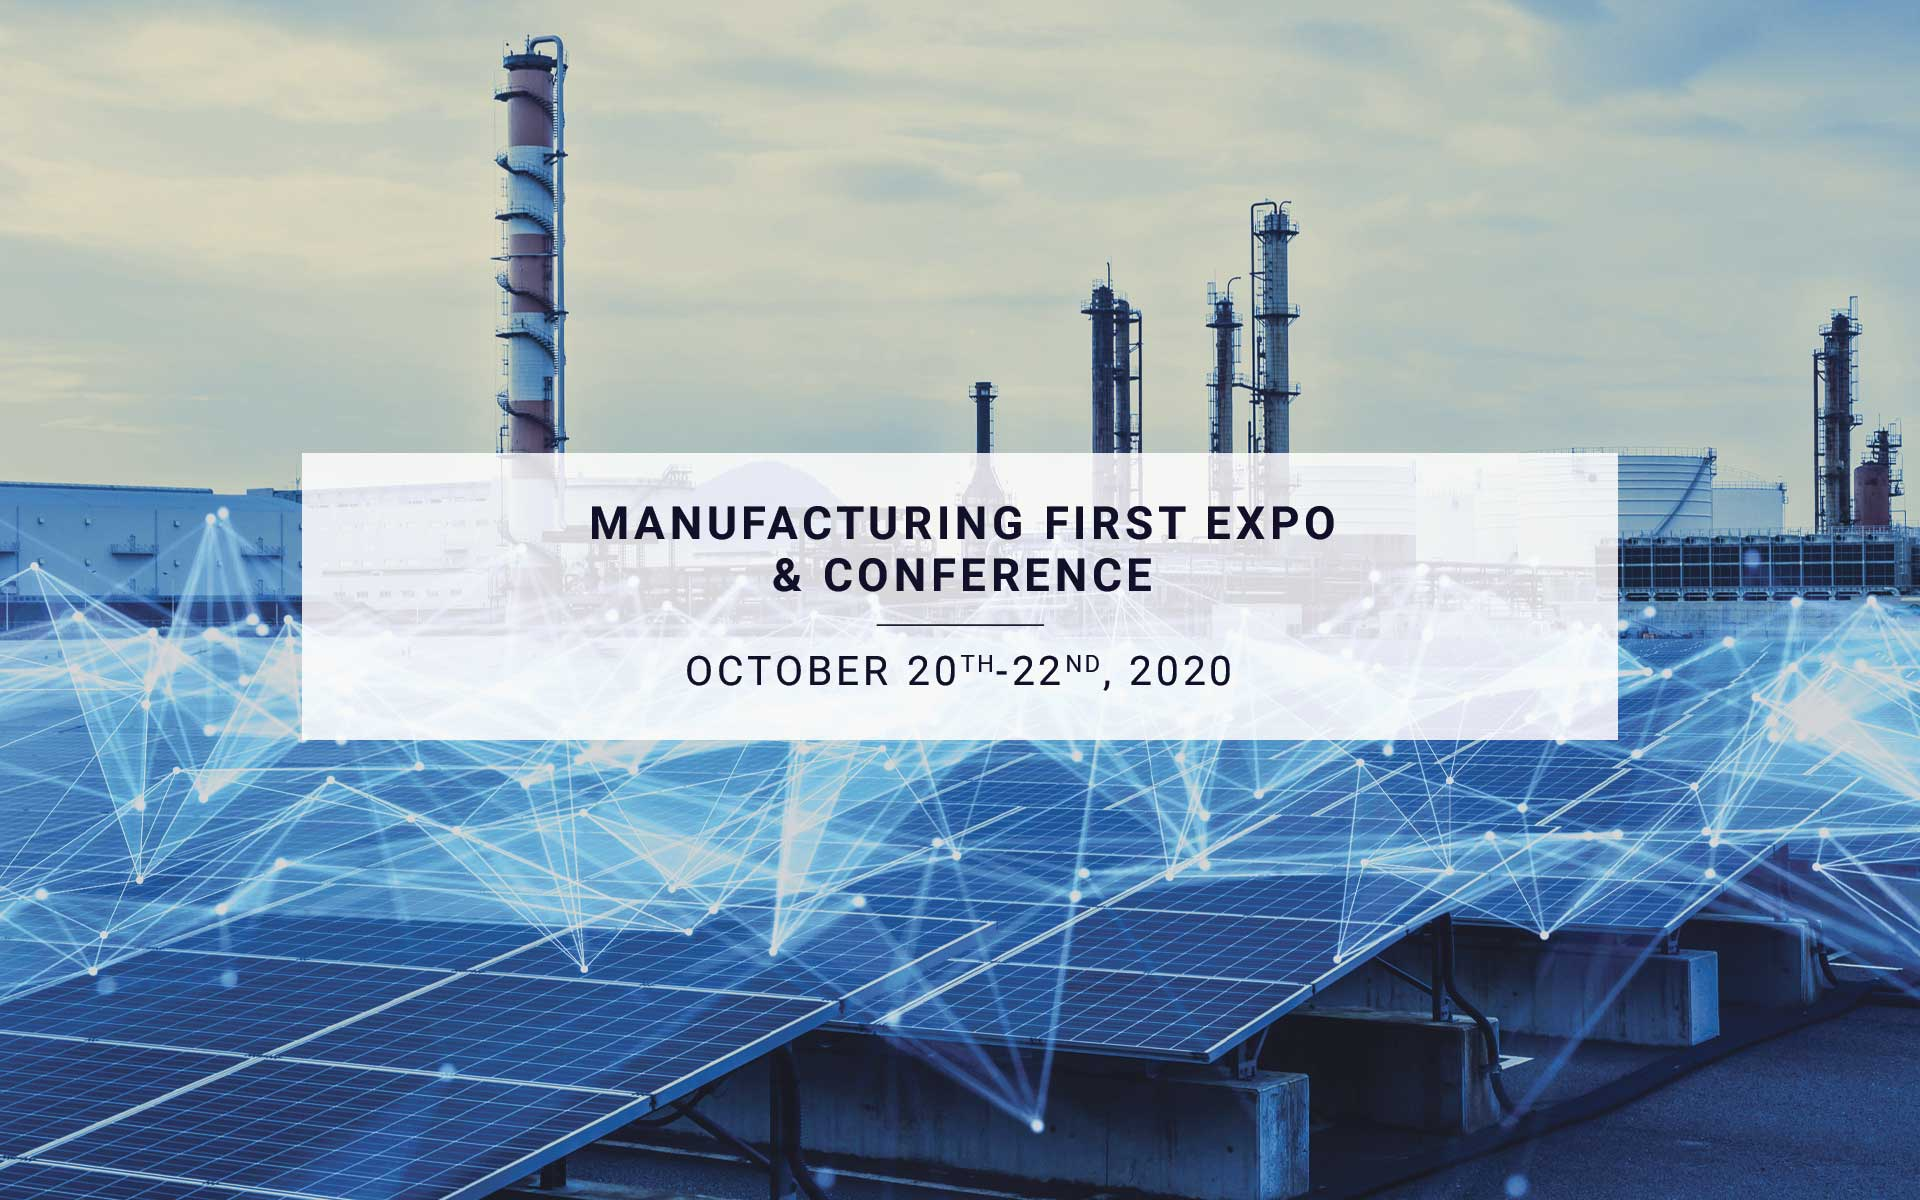 Manufacturing First Expo & Conference | New Resources Consulting